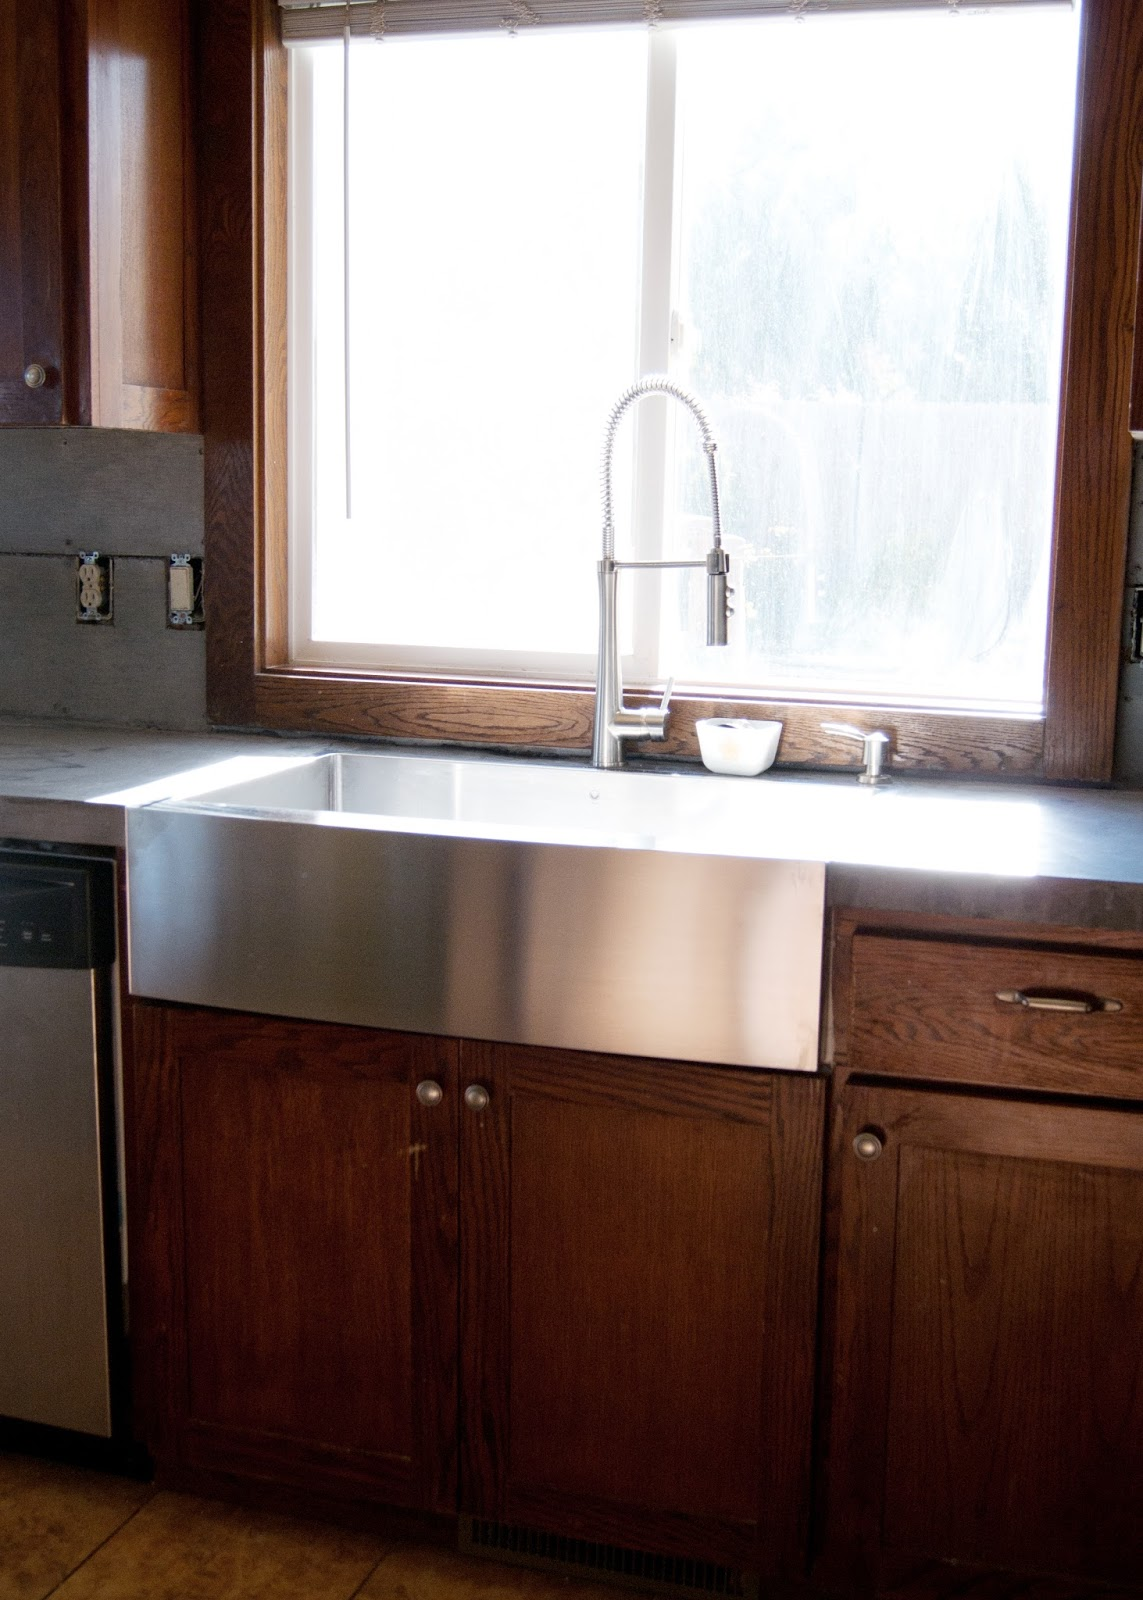 How To Install Kitchen Sink In New Countertop New Stainless Steel Apron Front Sink 43 How We Installed It